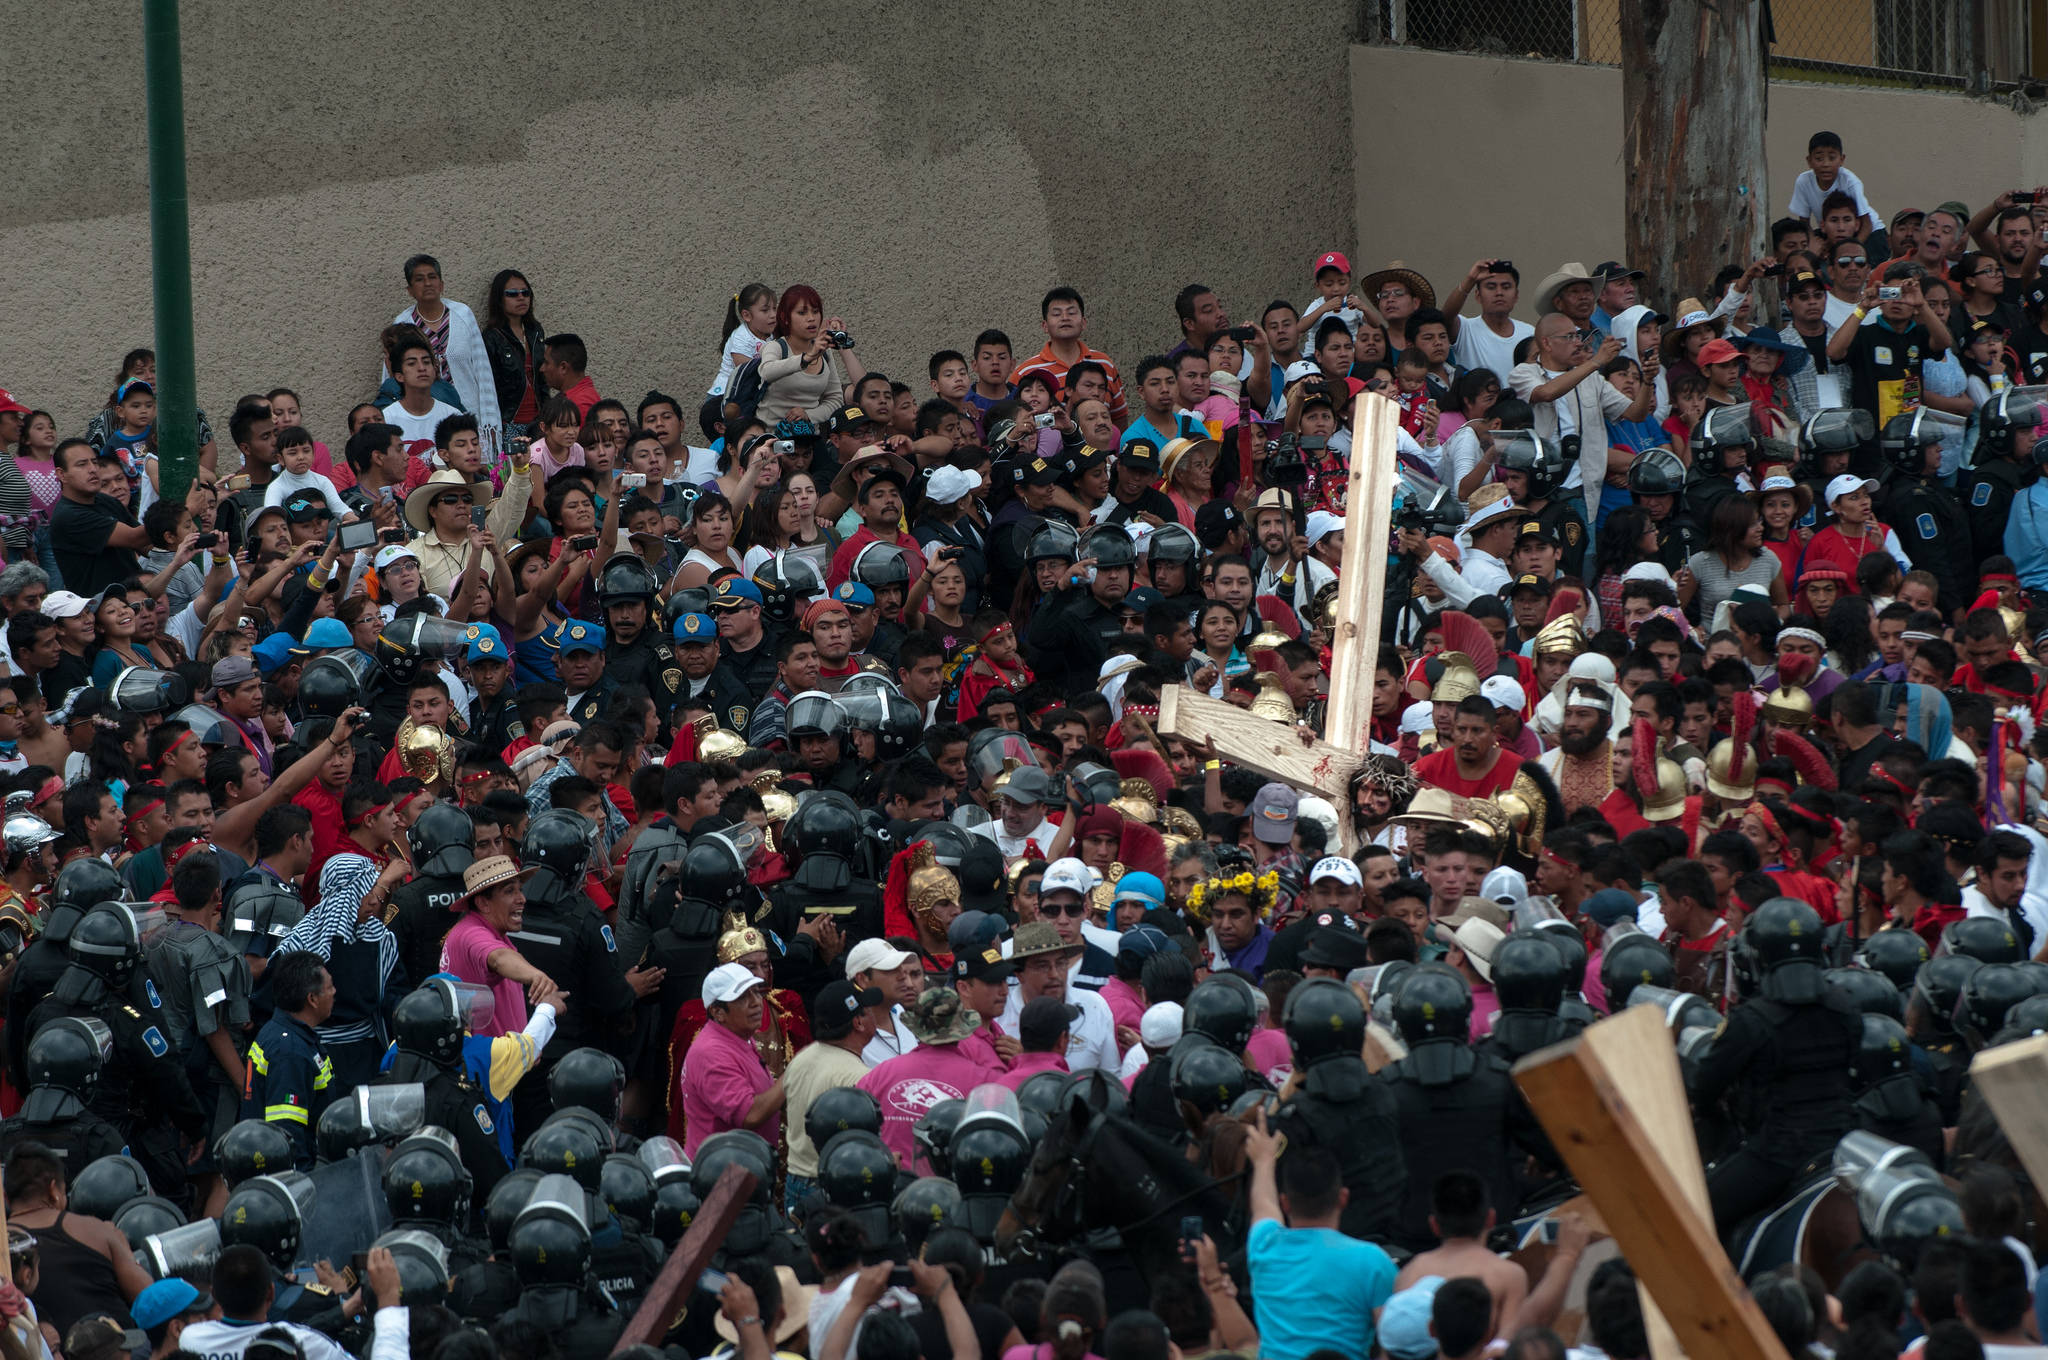 Easter celebrations in Iztapalapa, Mexico City | © Eneas de Troya/Flickr